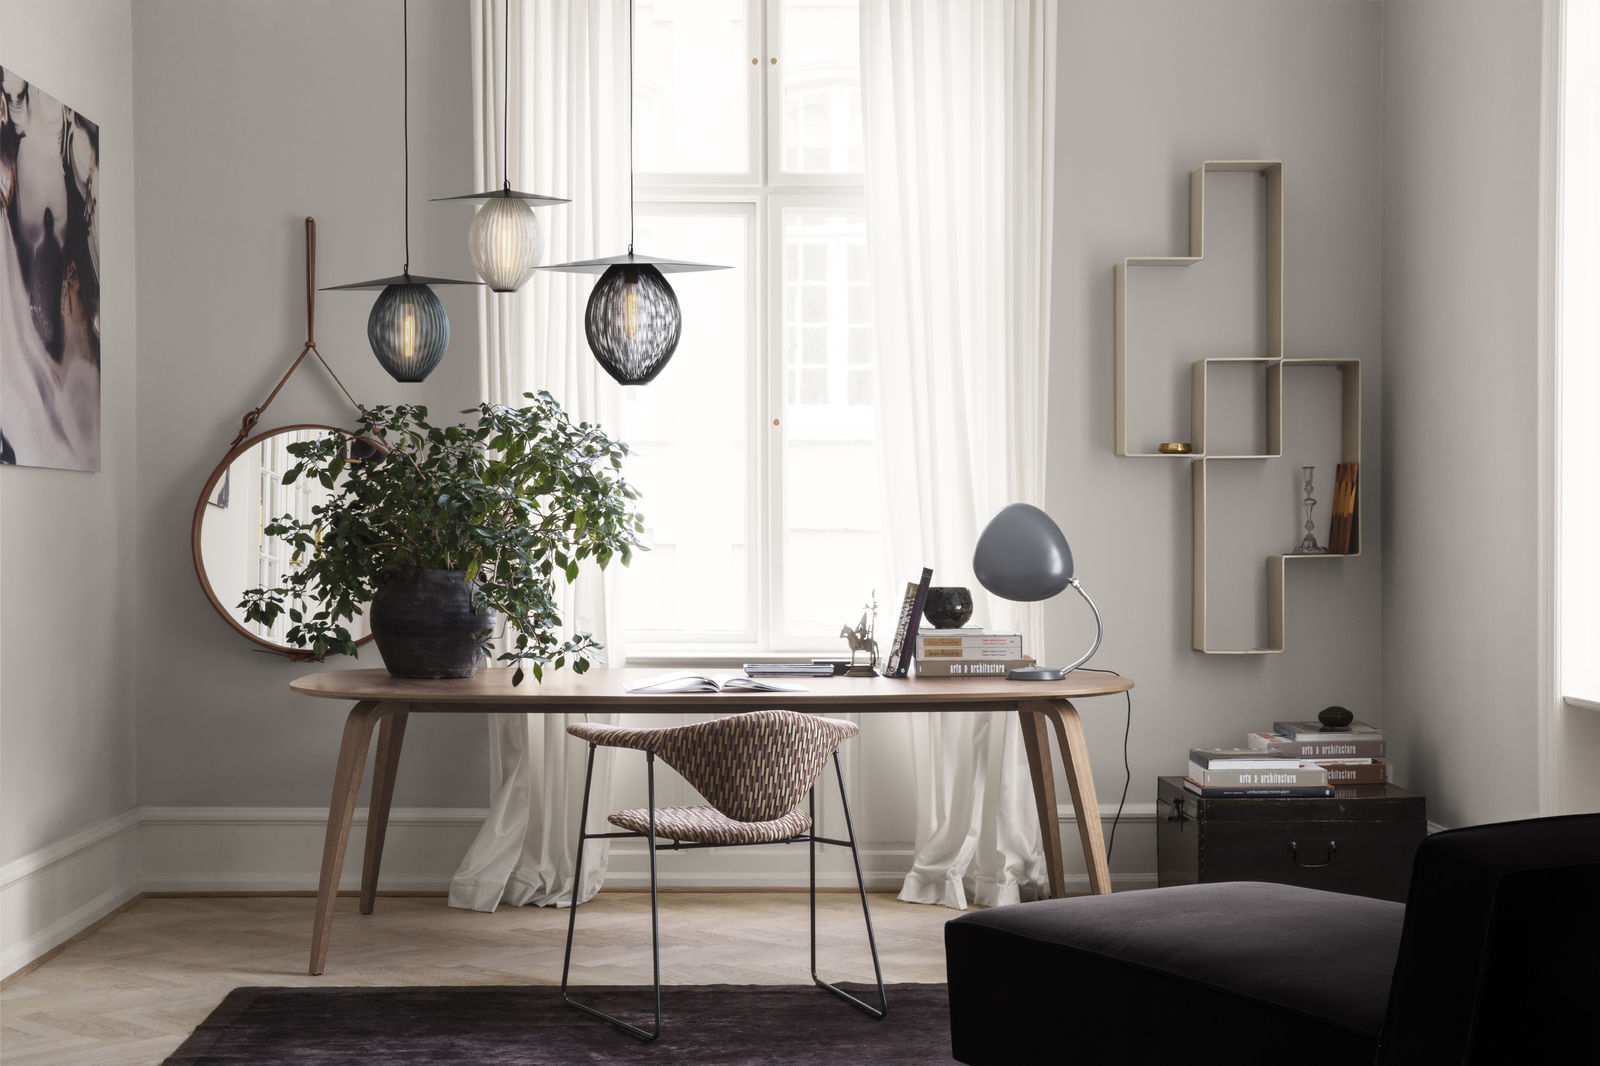 Satellite Pendant - rainy grey - white cloud - midnight black_Masculo Chair -Wienersteig M6561A08_on-1600x1600